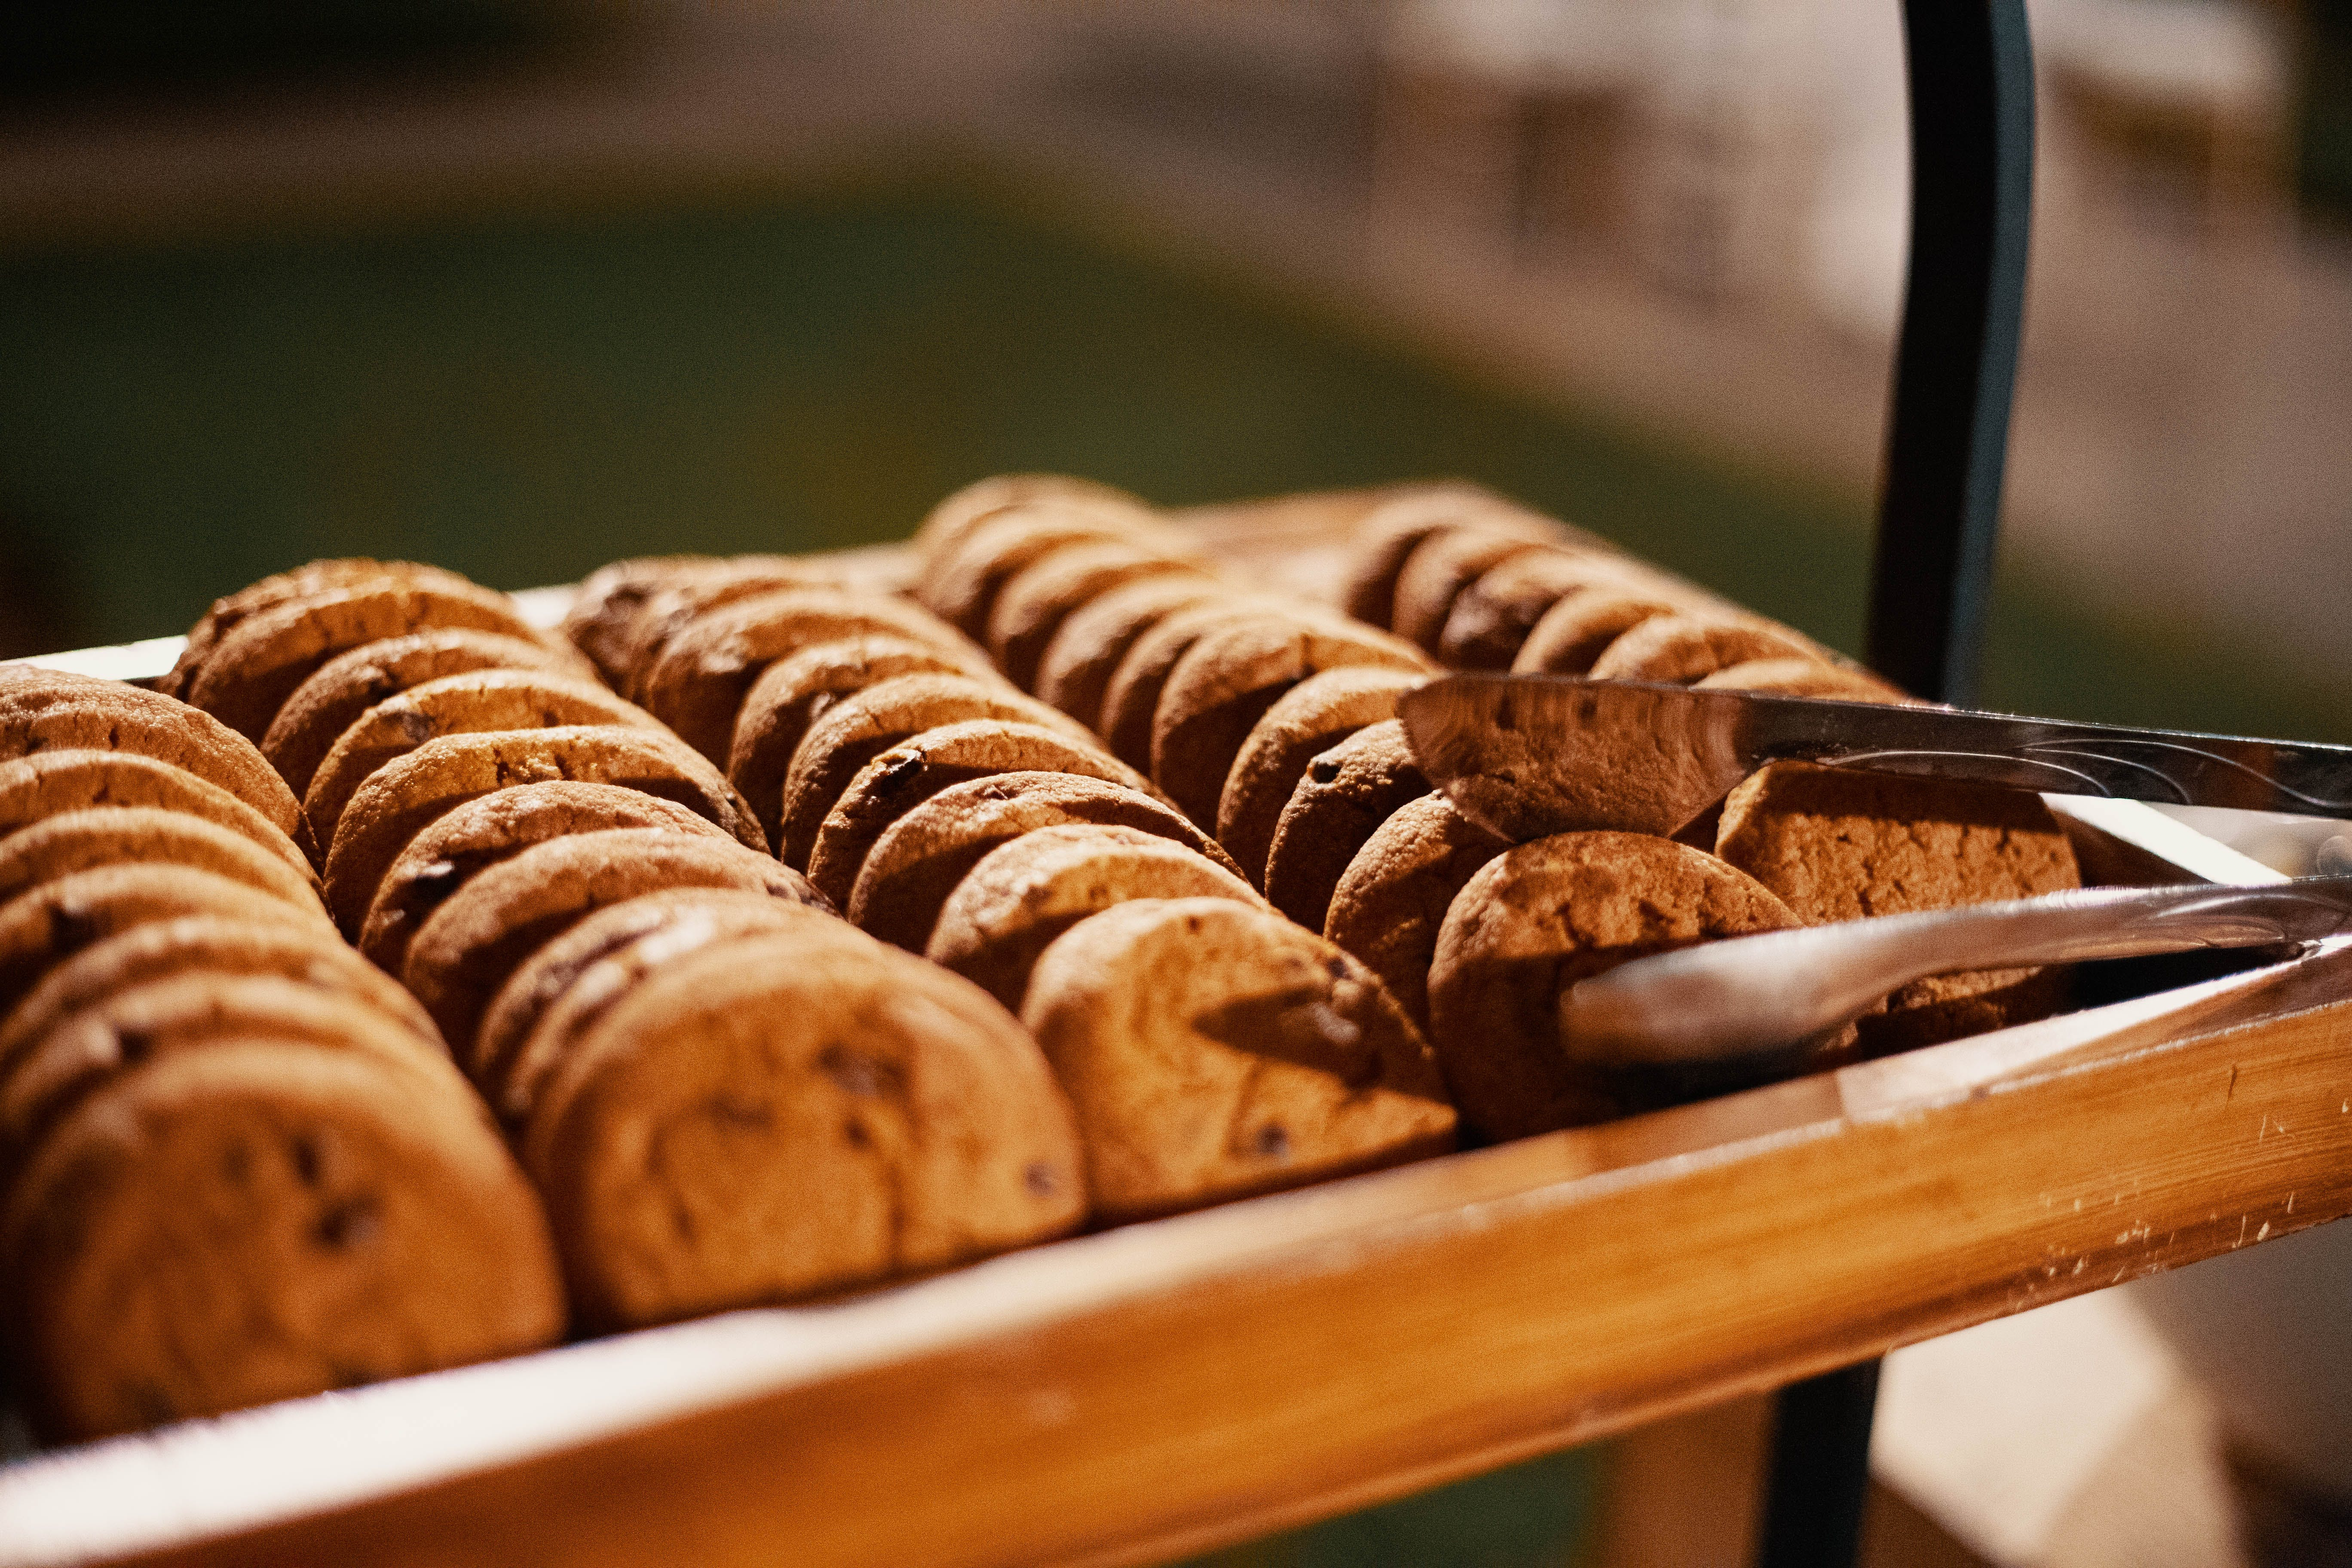 Selective Focus Photography of Baked Cookies With Gray Stainless Steel Tong